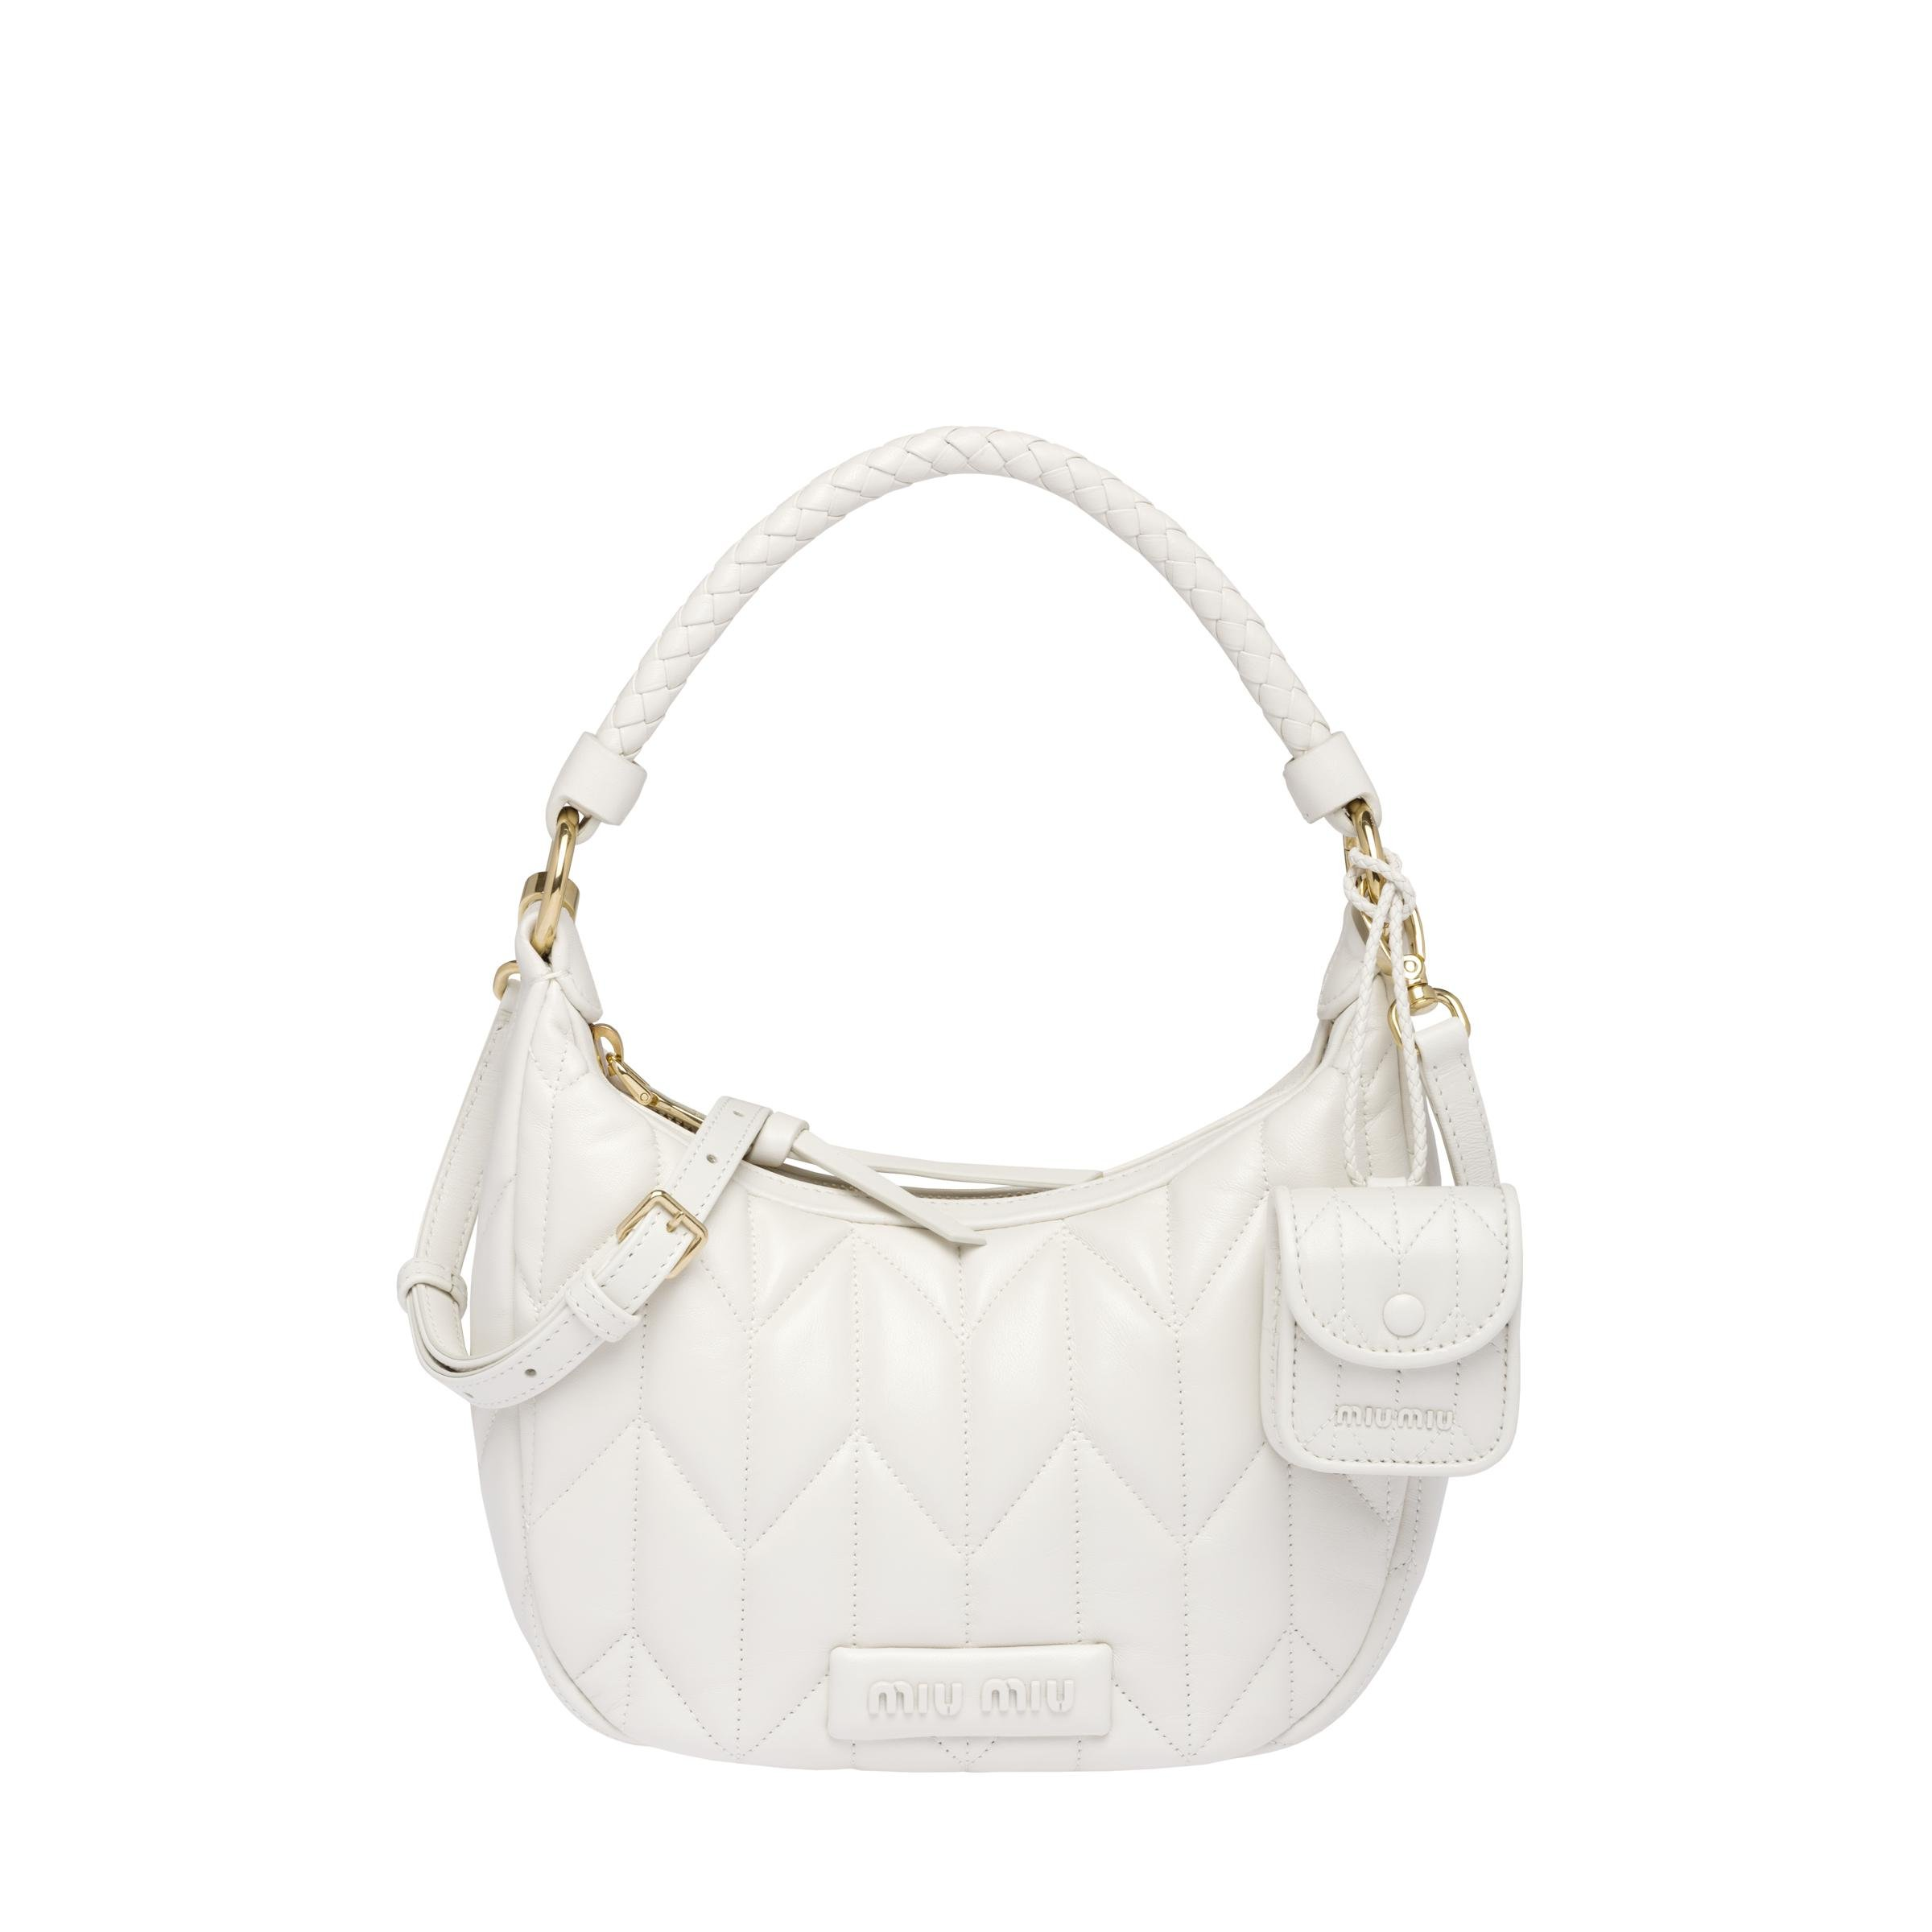 Quilted Nappa Leather Handbag Women White